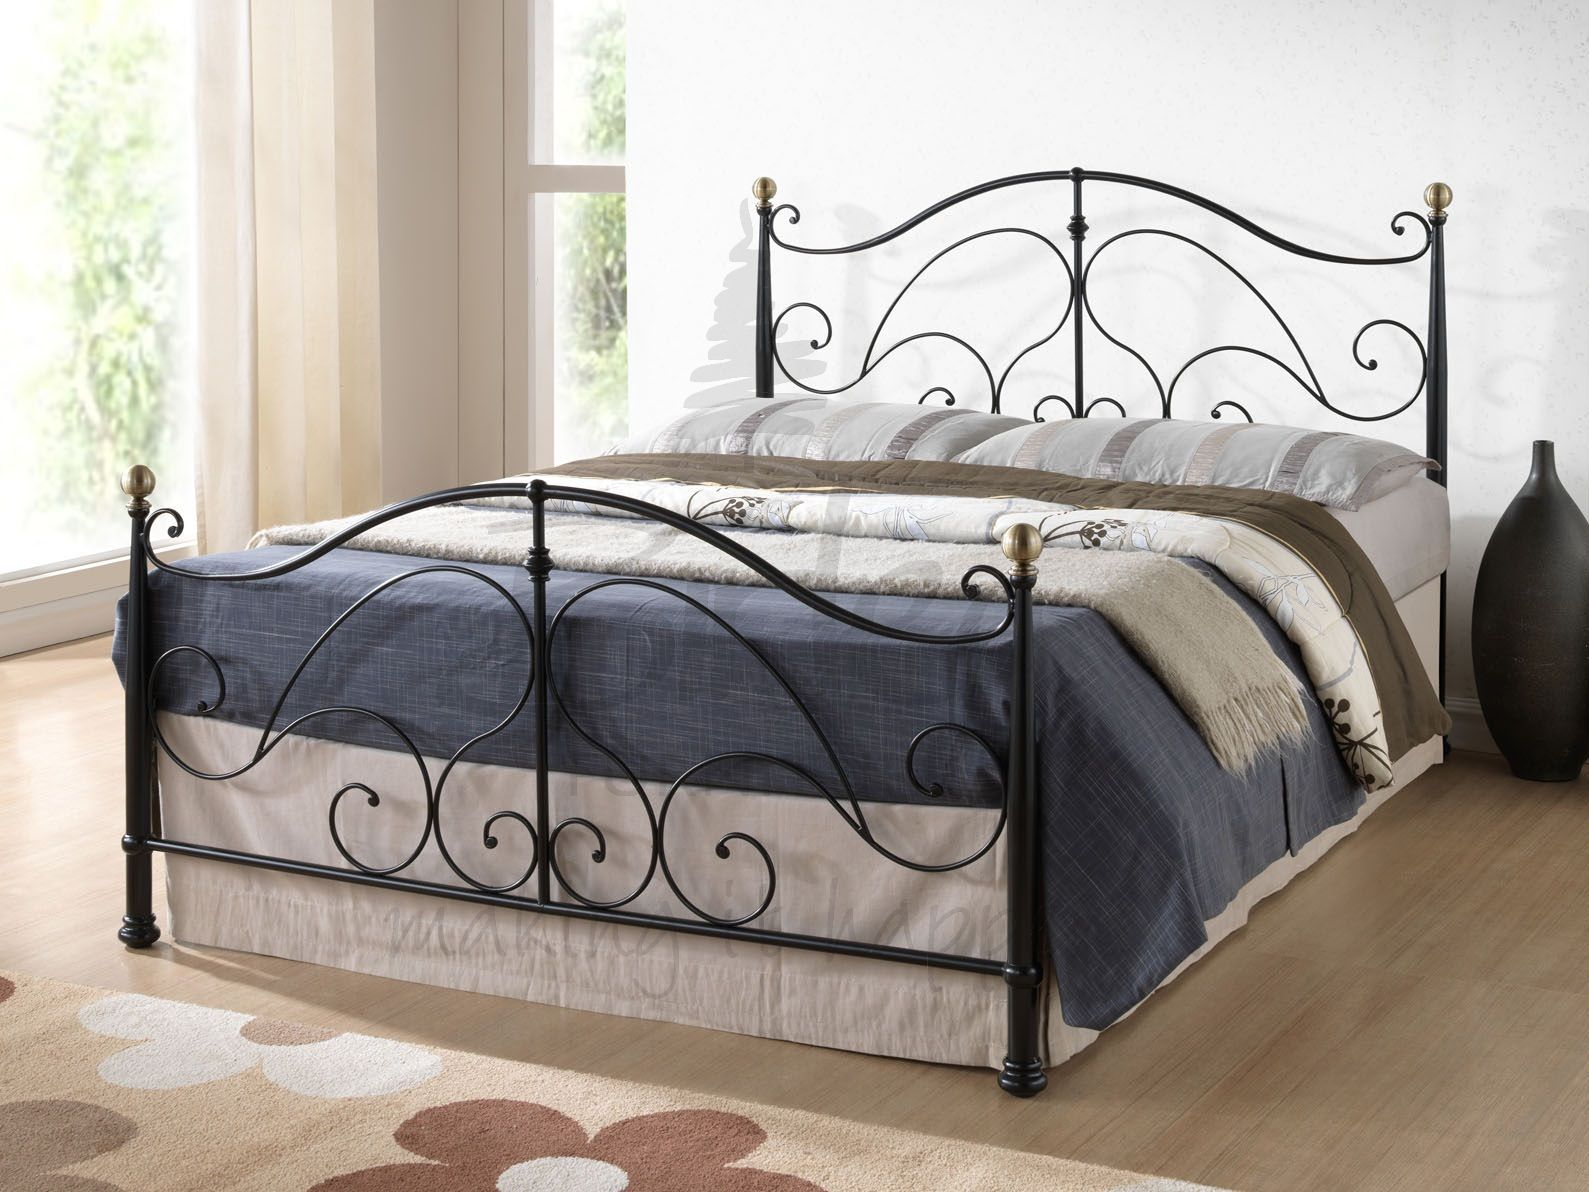 metal frame bed  beds  pinterest  metal beds iron accessories  - metal frame bed